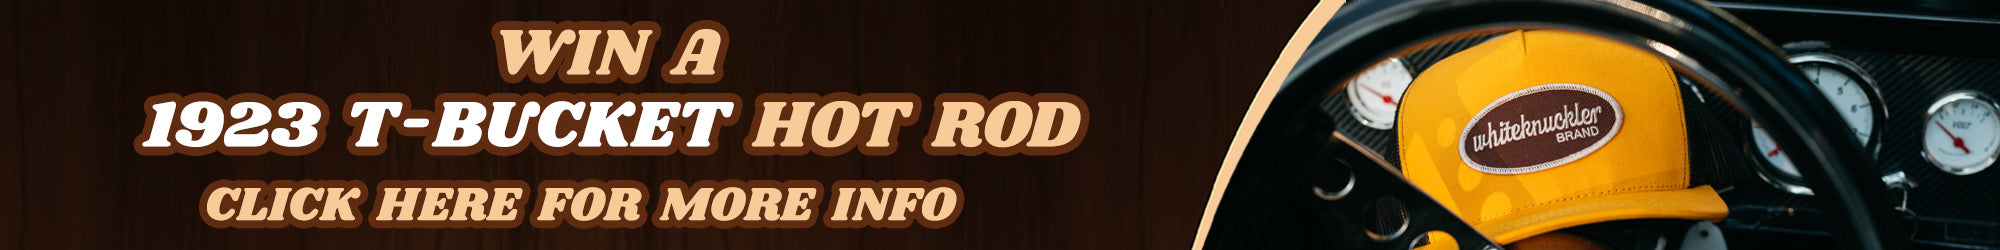 Hot Rod Giveaway!